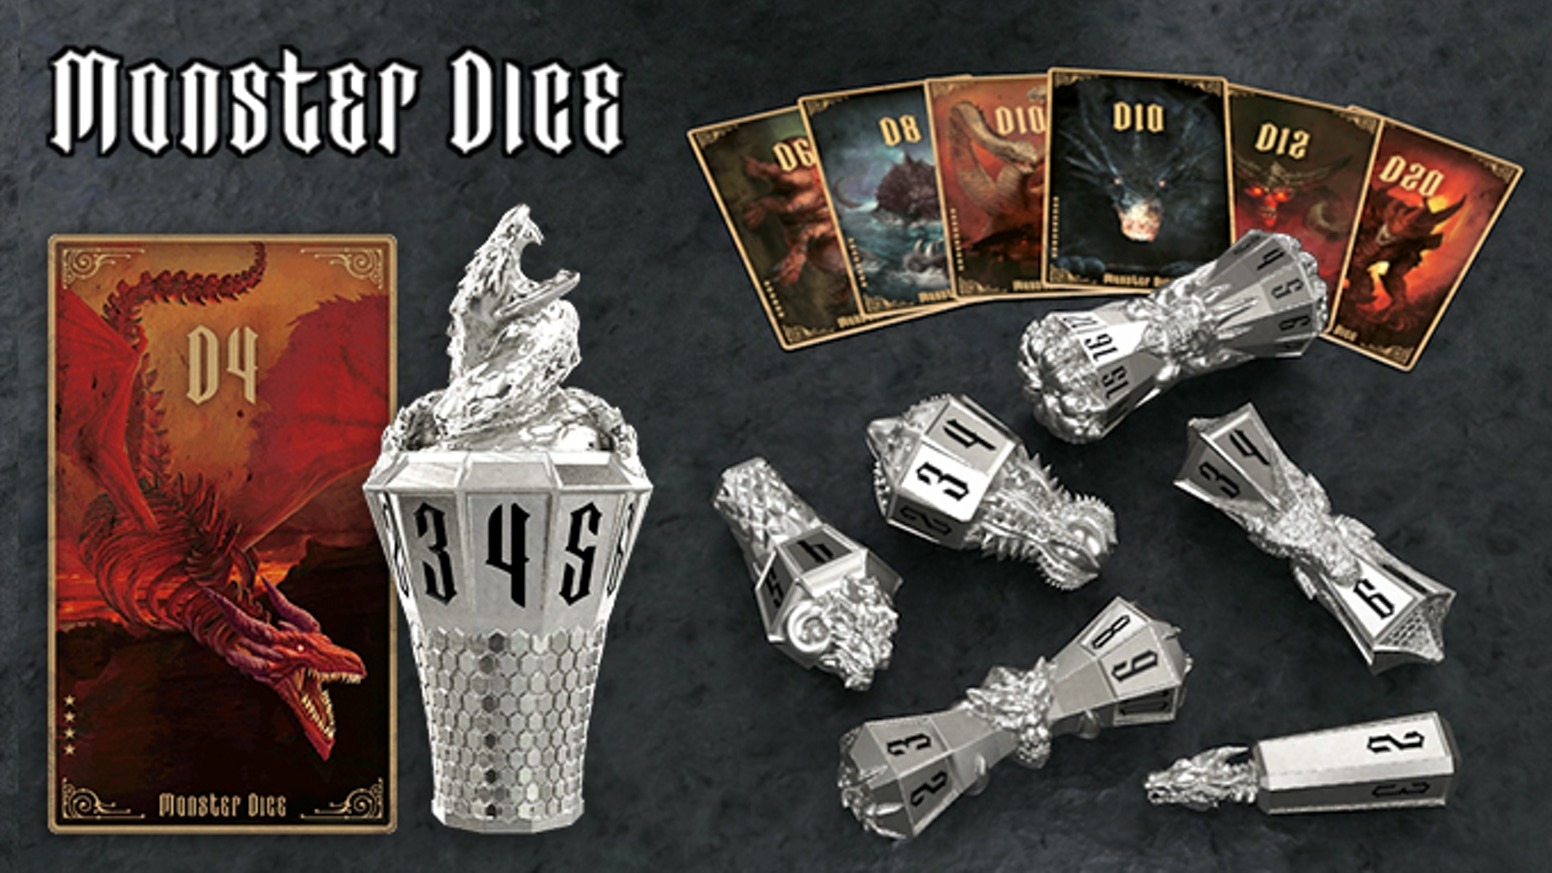 Elaborately crafted metal dice(D4, D6, D8, D10X2, D12, D20) will give a pleasant joy in your tabletop games and your daily life.